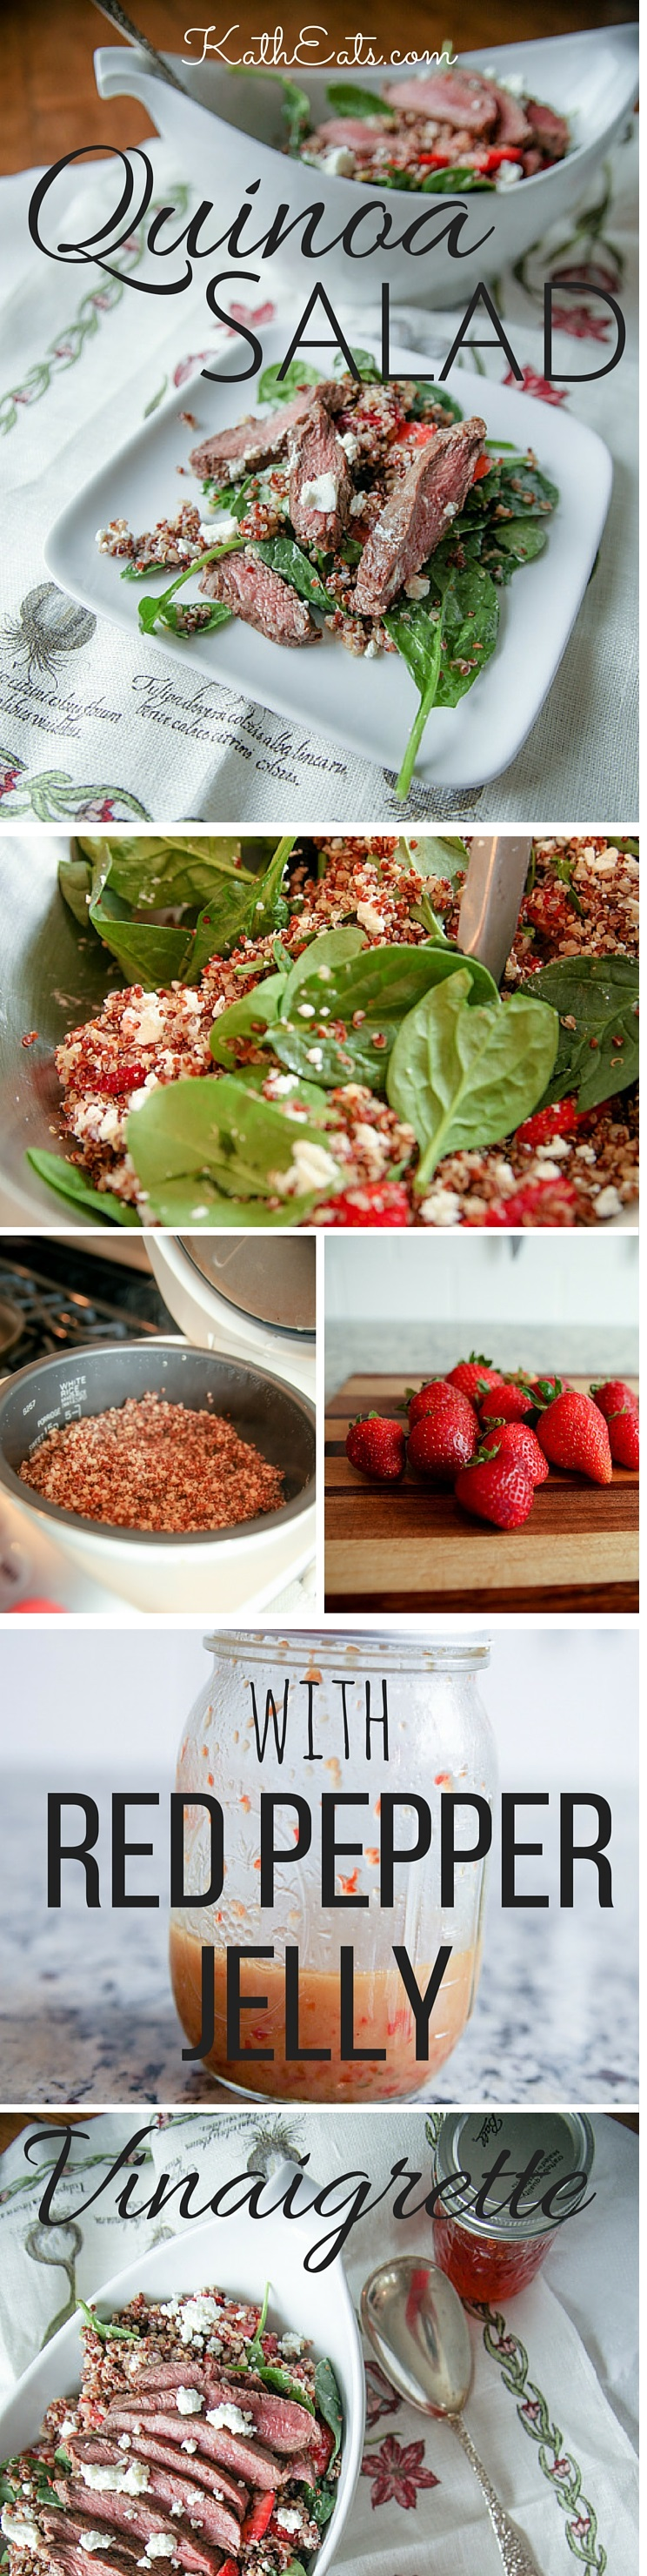 Quinoa Salad with Red Pepper Jelly Vinaigrette Pin